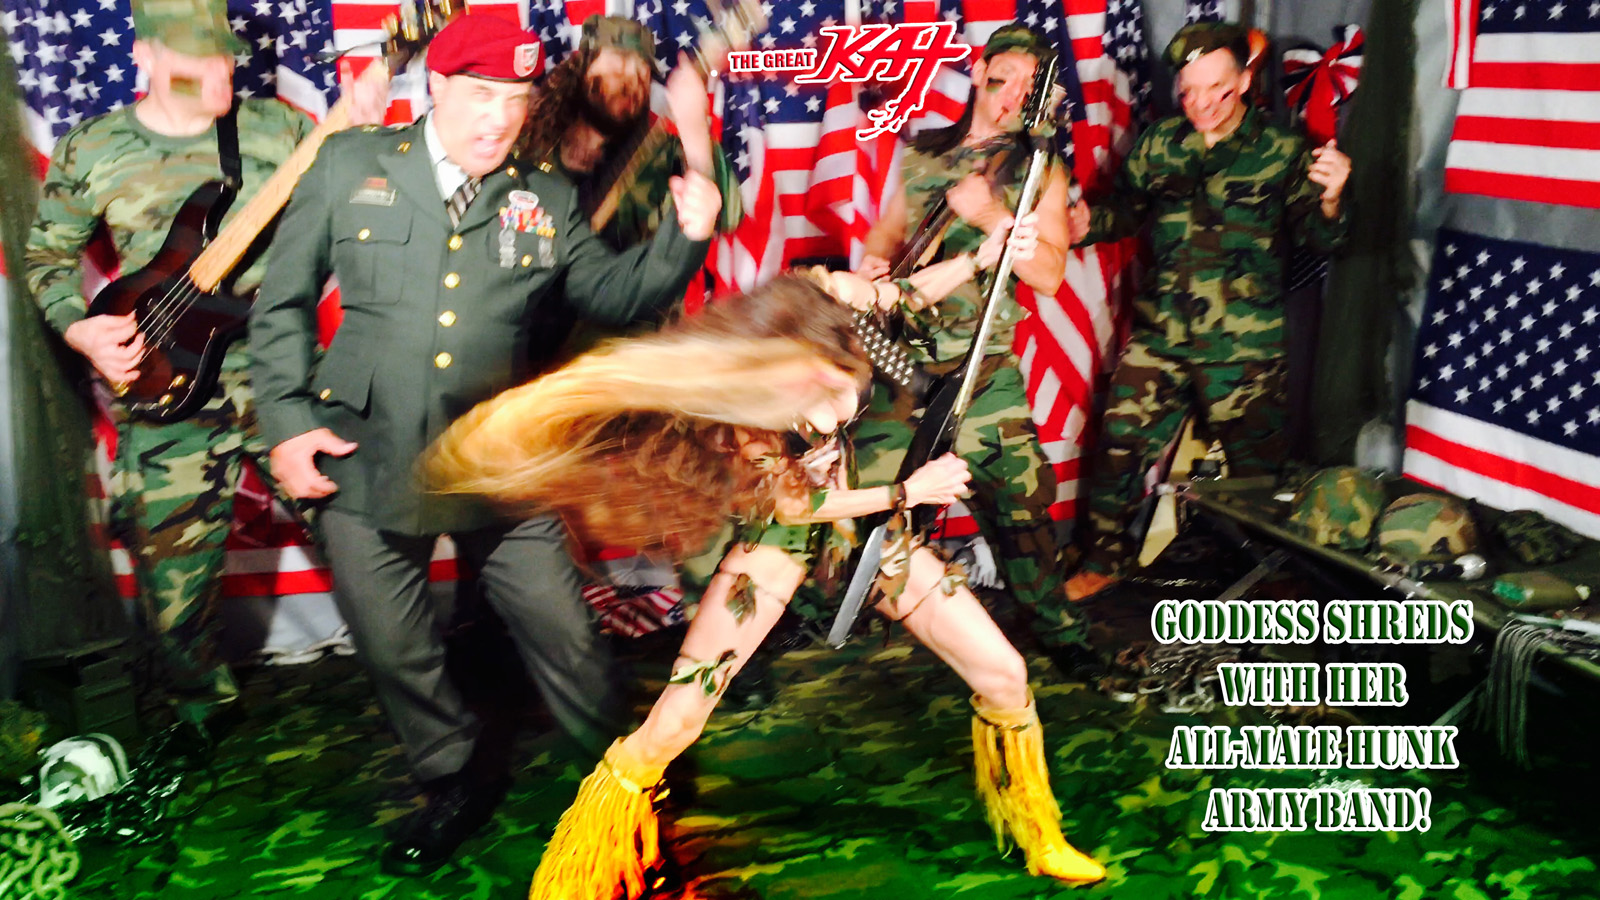 "GODDESS SHREDS with her ALL-MALE HUNK ARMY BAND! From The Great Kat's ""TERROR"" MUSIC VIDEO!"